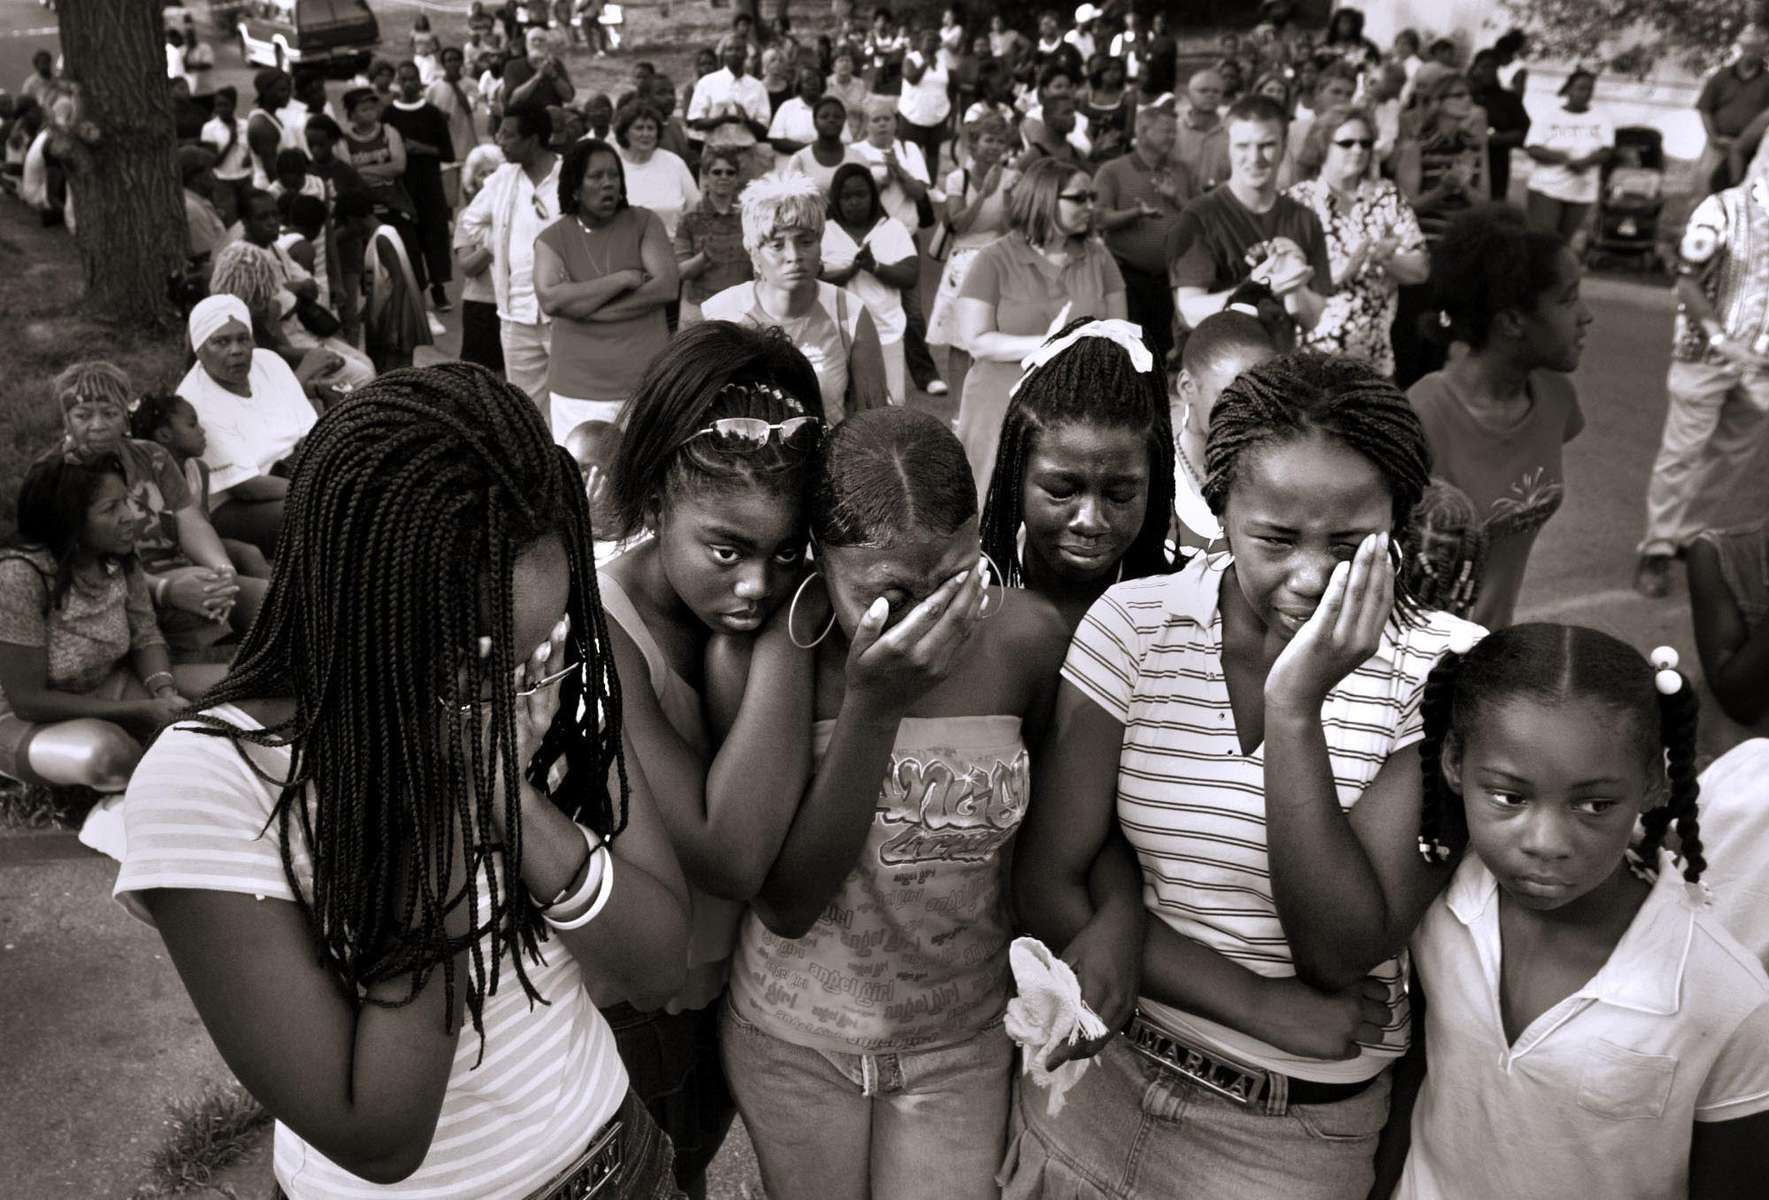 "Leighann Johnson, left, Shonnie Branom, Judeia Jones, Sanosa Berry, Marla Johnson and Aaliyah Hawkins morn Joseph ""Bam Bam"" Long during a community prayer service for Long, slain police Sgt. William McEntee, and McEntee's accused murderer Kevin Johnson in Kirkwood, Mo..  Johnson shot McEntee after an early incident in the nighborhood during which {quote}Bam Bam{quote} collapsed and died from a heart condition.  About 800 people gathered at the intersection of Alsobrook and Orleans streets on Saturday.  After praying at the intersection the group marched up to the site where the officer was shot and then over to the memorial outside of Long's house."